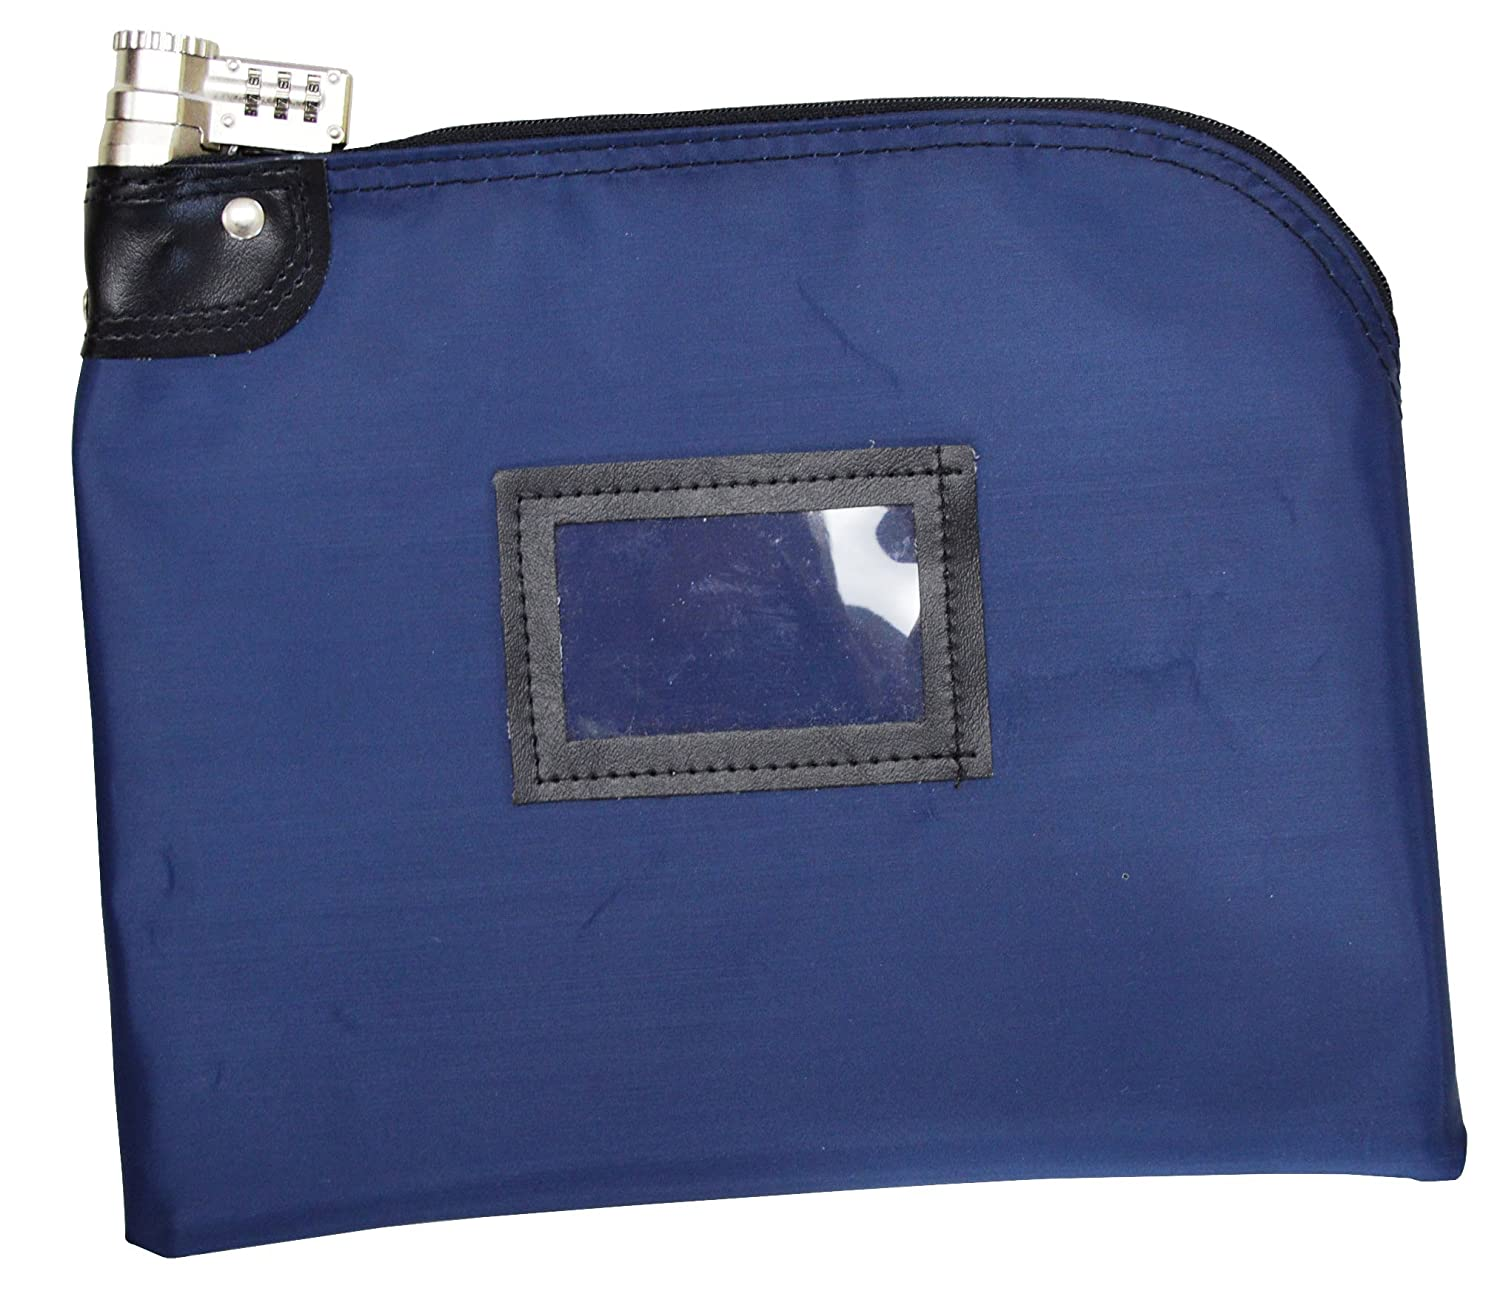 Locking Bank Bag Laminated Nylon Combination Keyed Security System Navy Blue Cardinal Bag Supplies 76161222